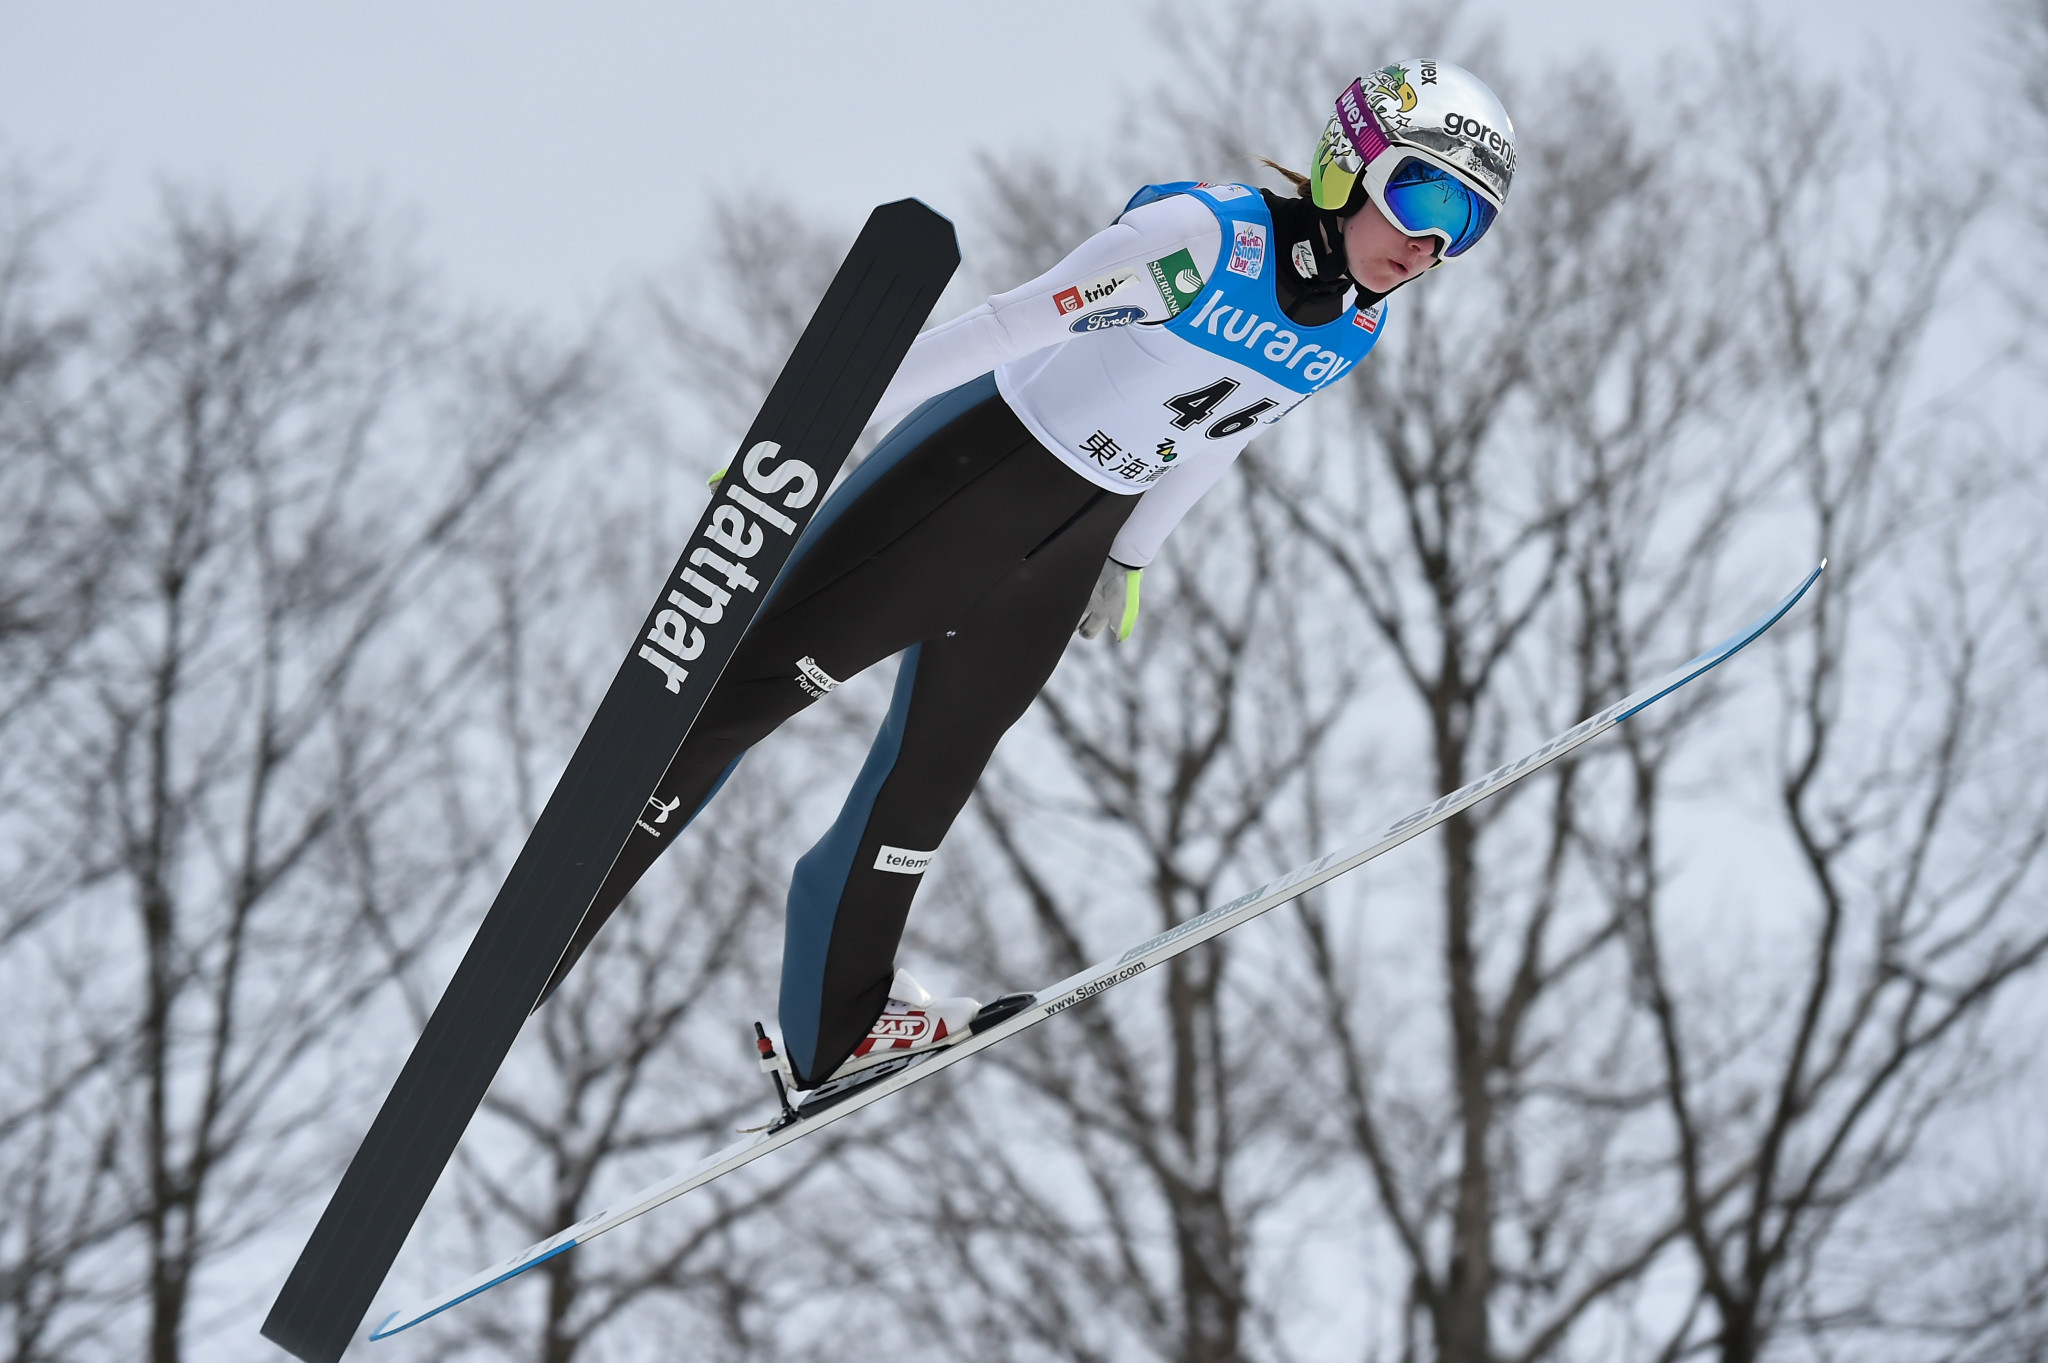 Ema Klinec could not get her side the gold medal despite a strong showing on the last leg ©Getty Images